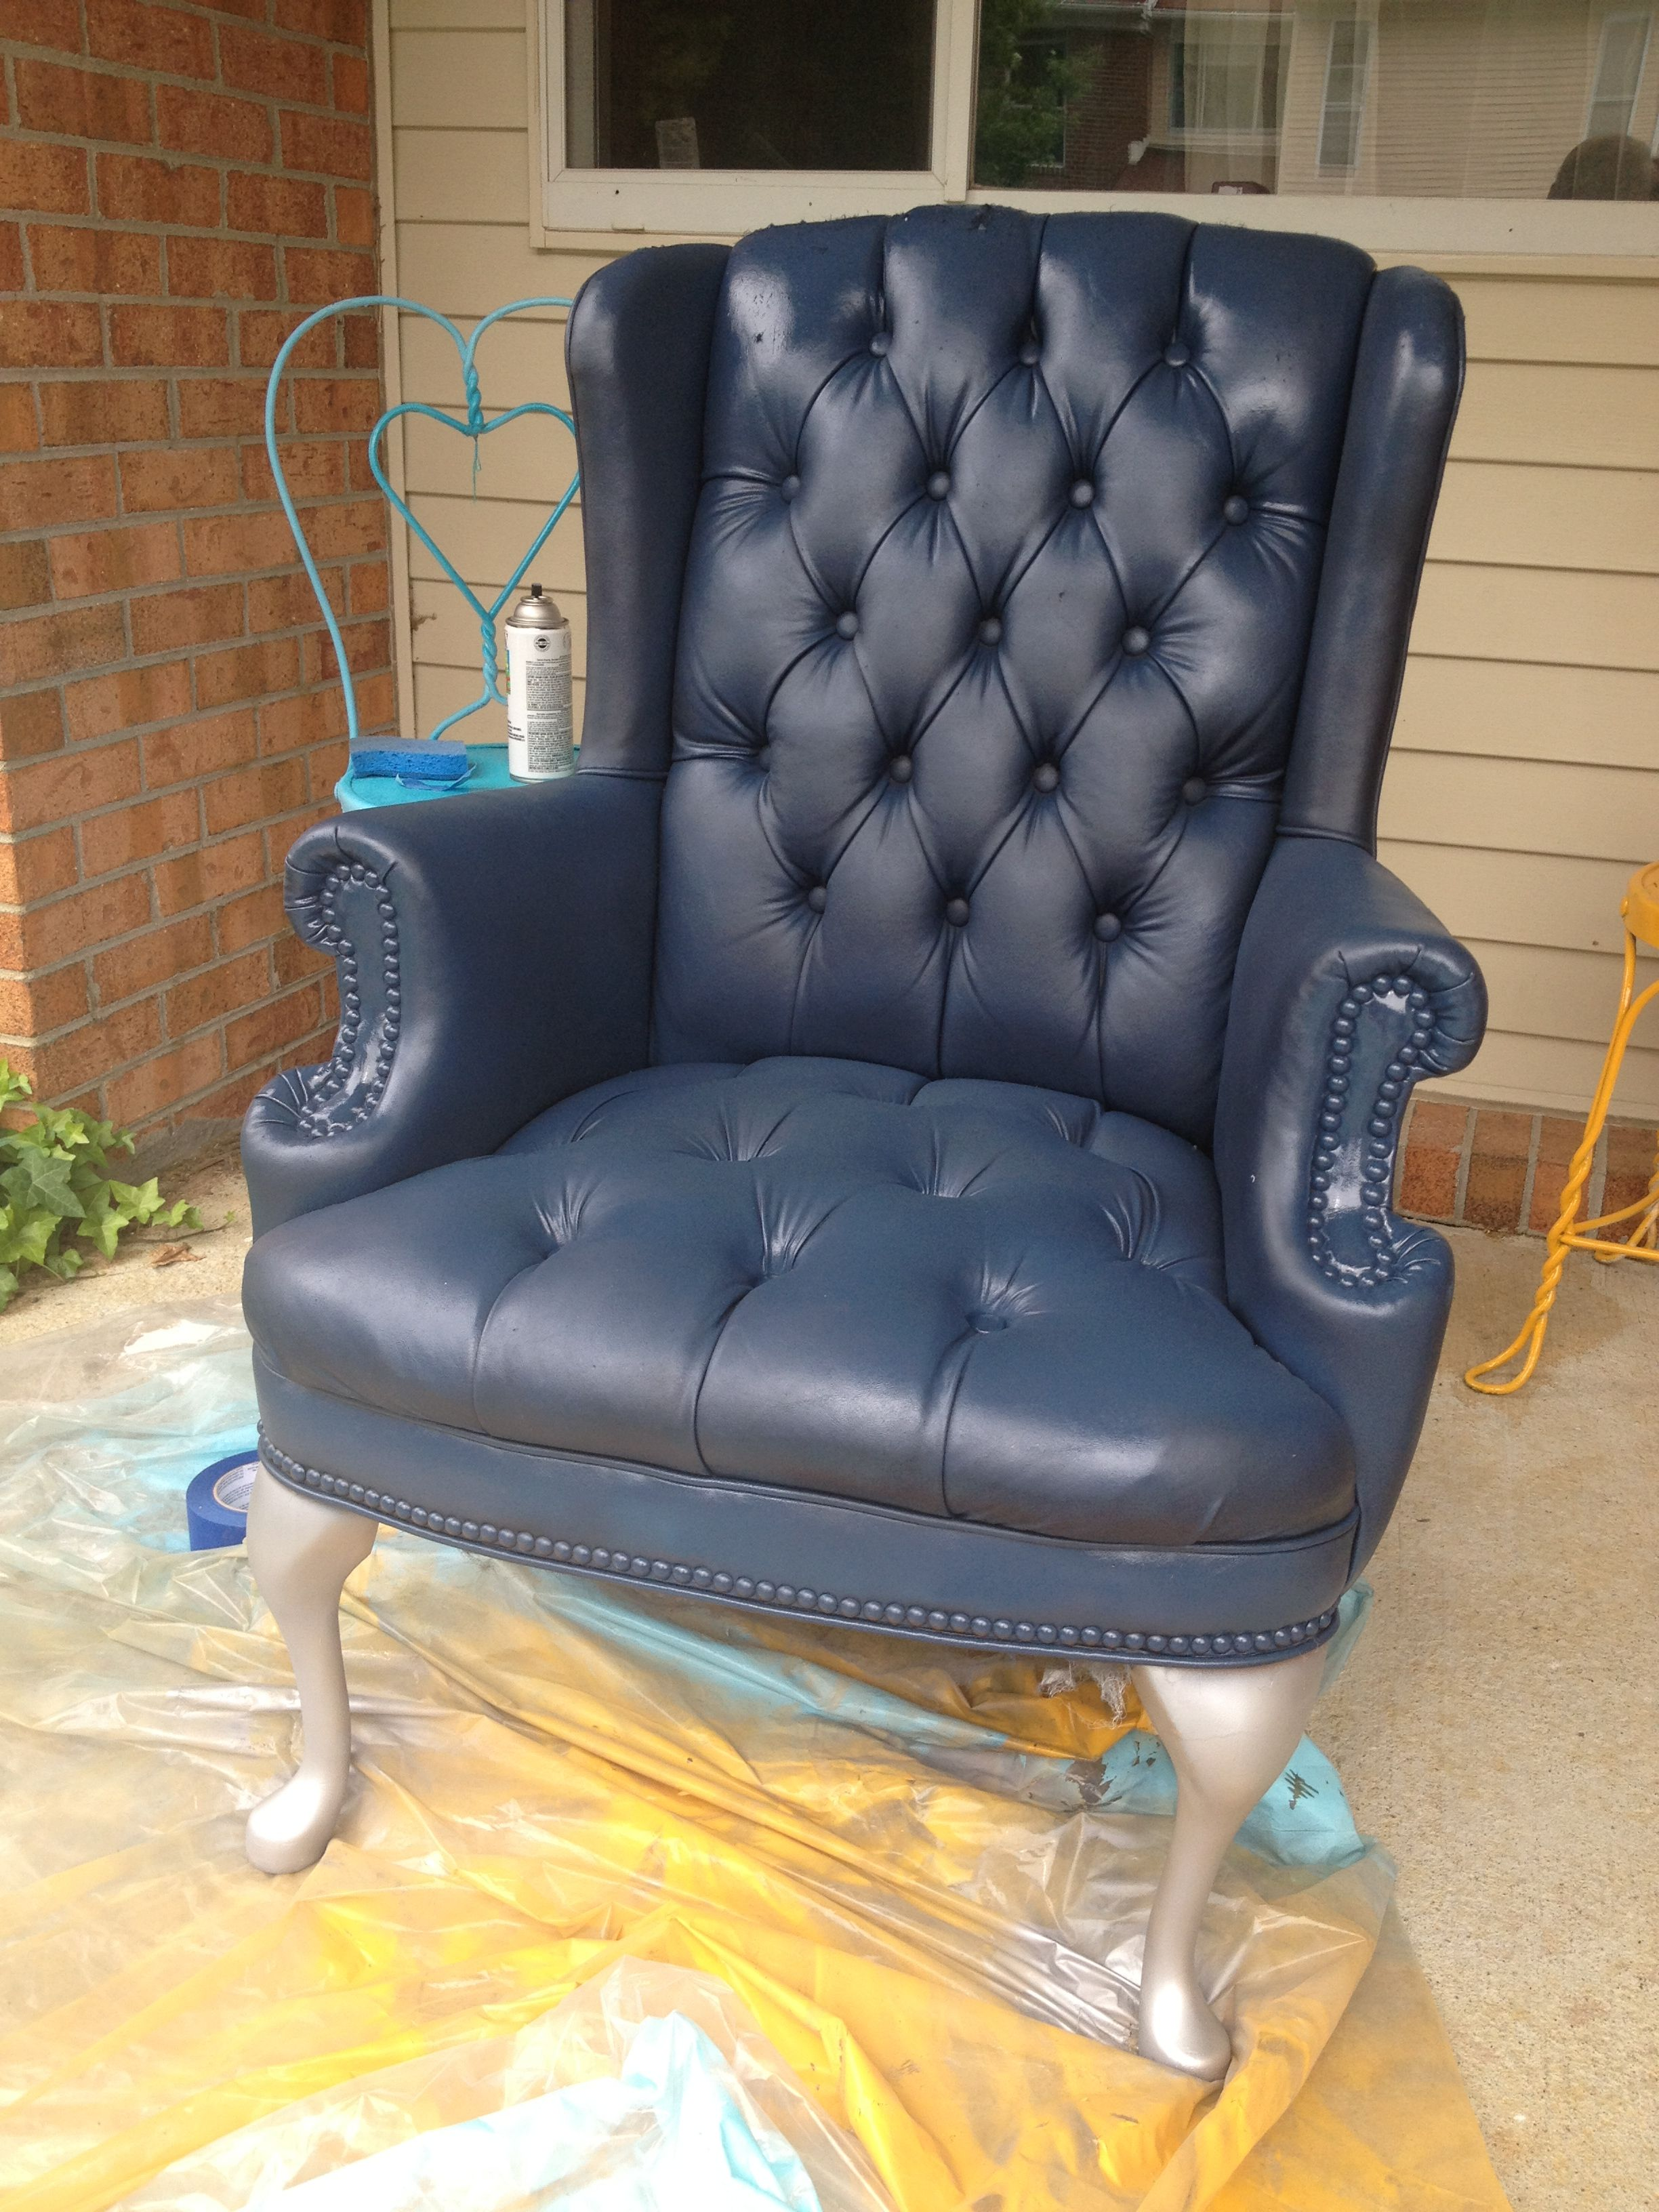 Overstuffed Wingback Chair Diy Painted Faux Leather Pleather Vinyl Armchair